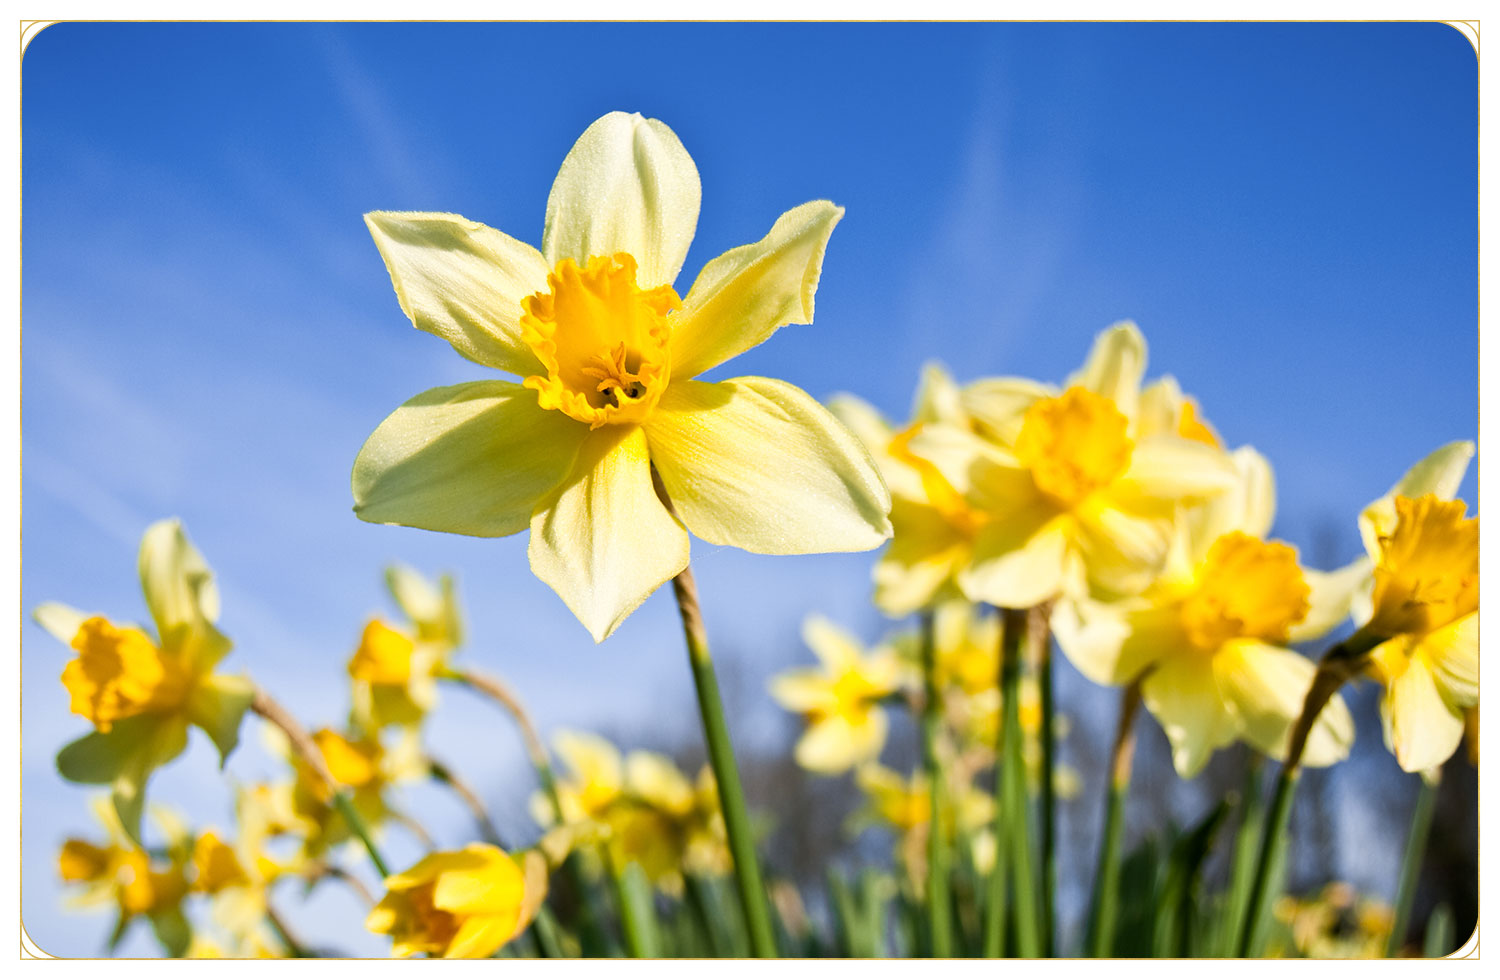 yellow daffodils in garden with blue sky